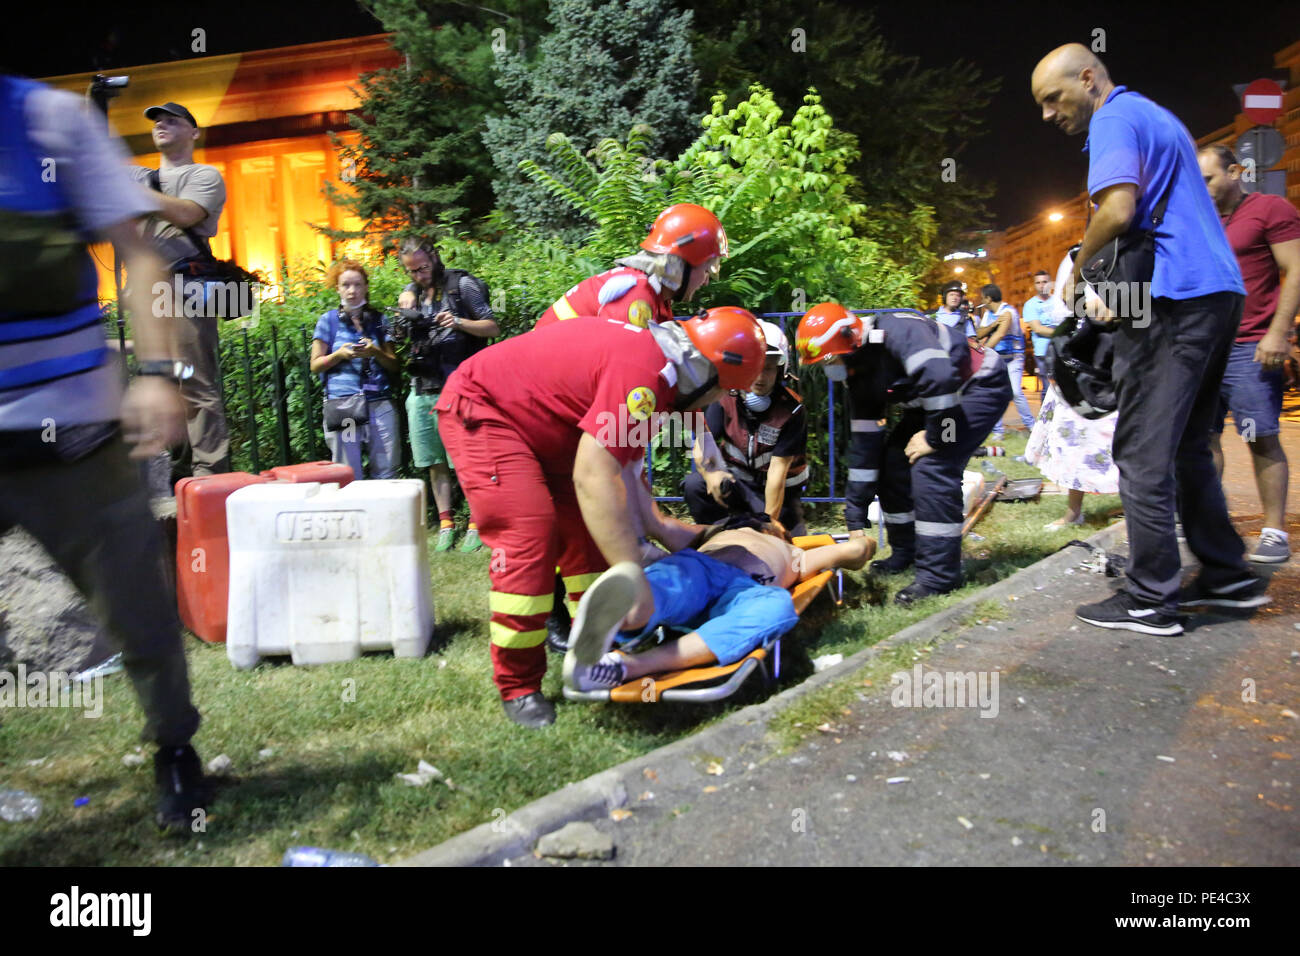 Bucharest, Romania - August 10, 2018: Paramedics are offering first aid to an injured football supporter by tear gas receives during the violent anti- - Stock Image